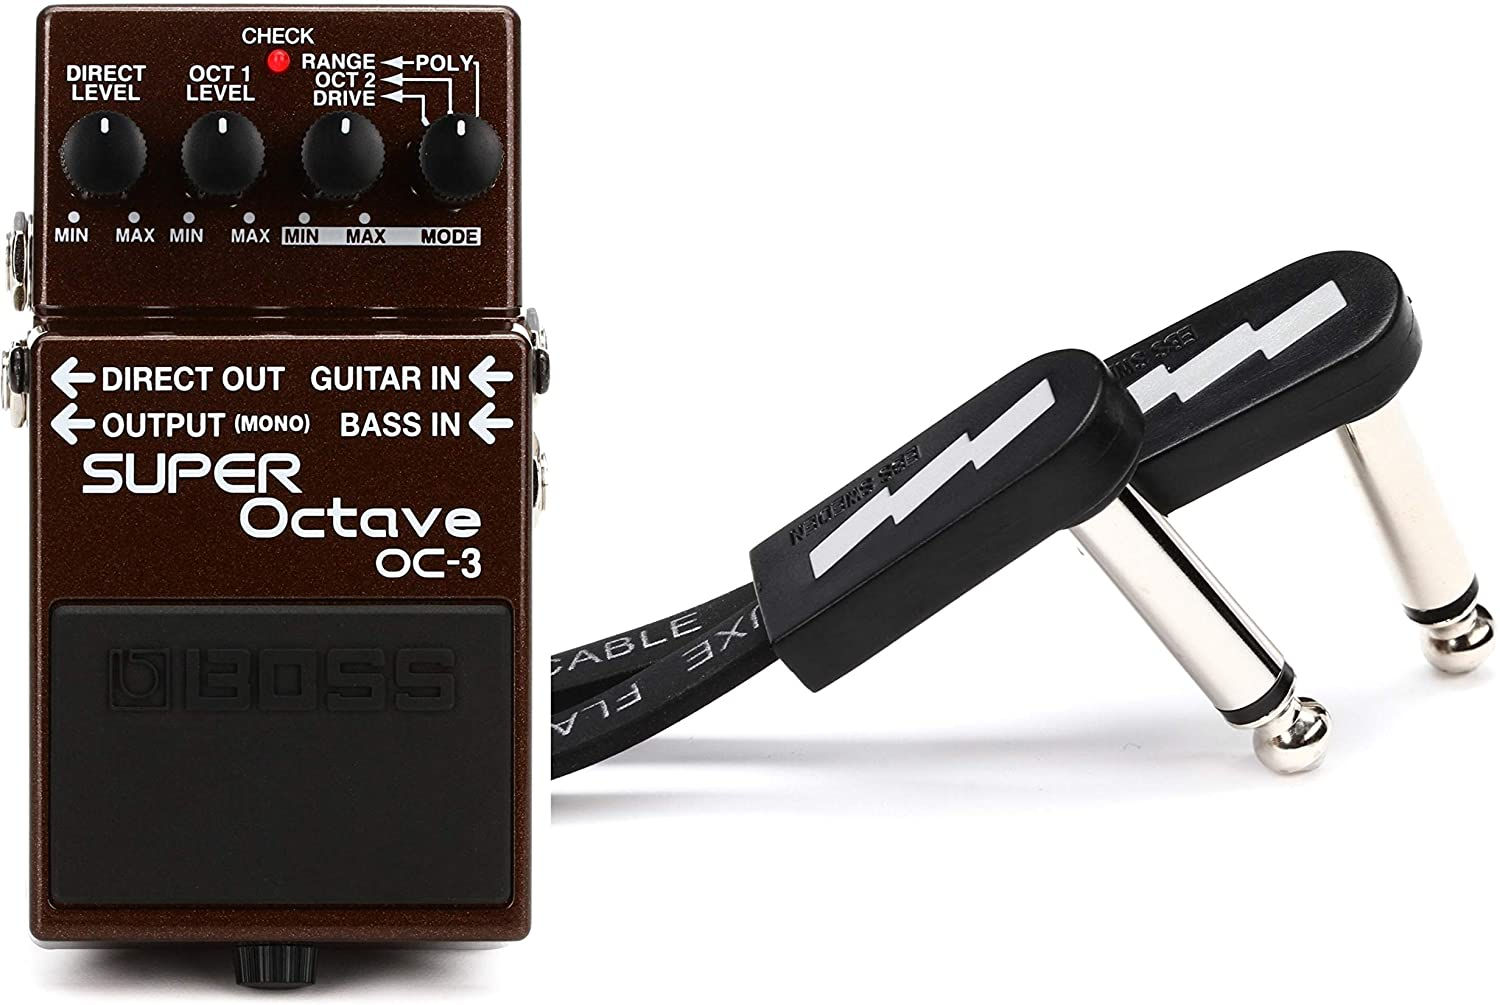 Boss OC-3 Dual Super Octave Pedal + EBS PCF-DL18 Deluxe Flat Patch Cable - 7.09